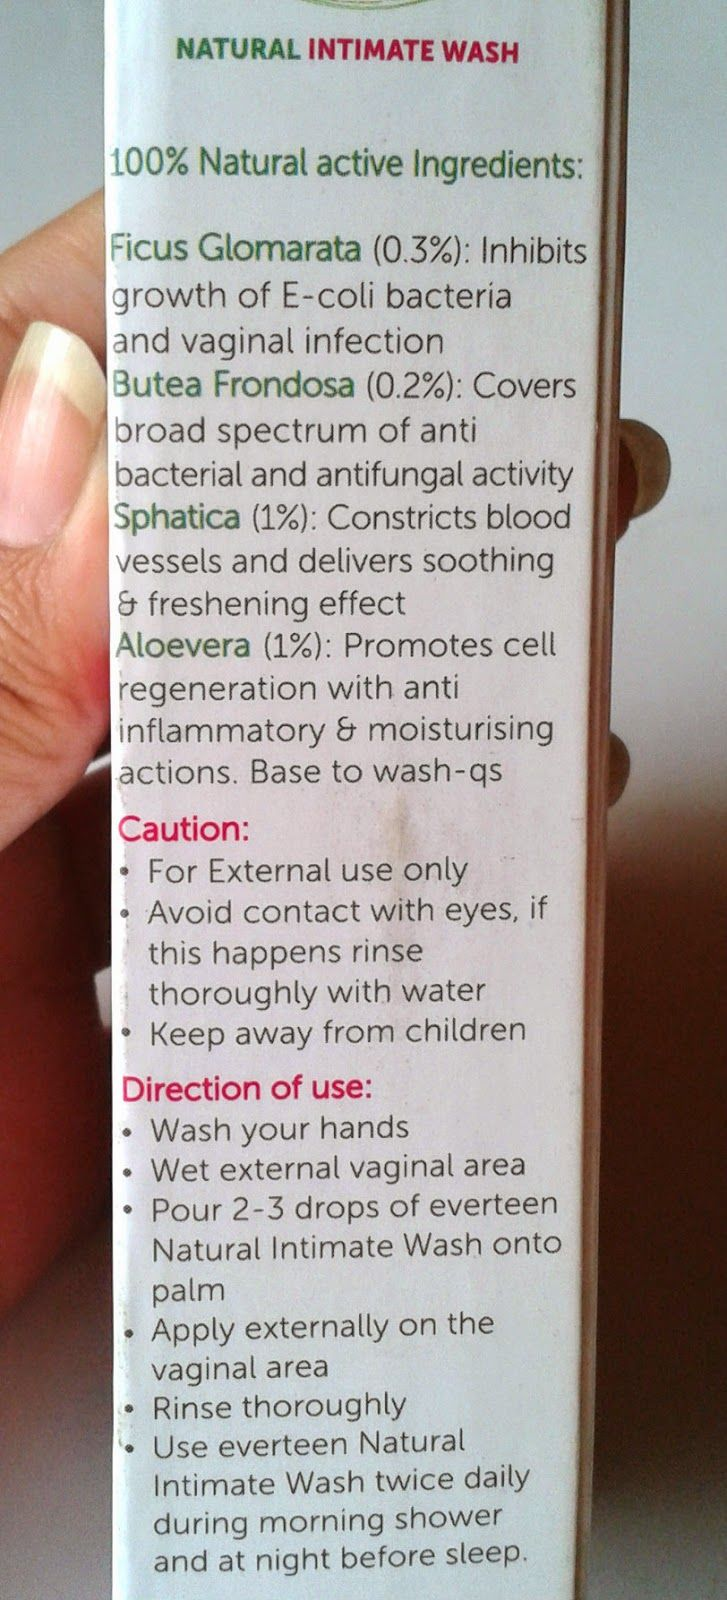 It contains all herbal ingredients which are known for improving the vaginal condition